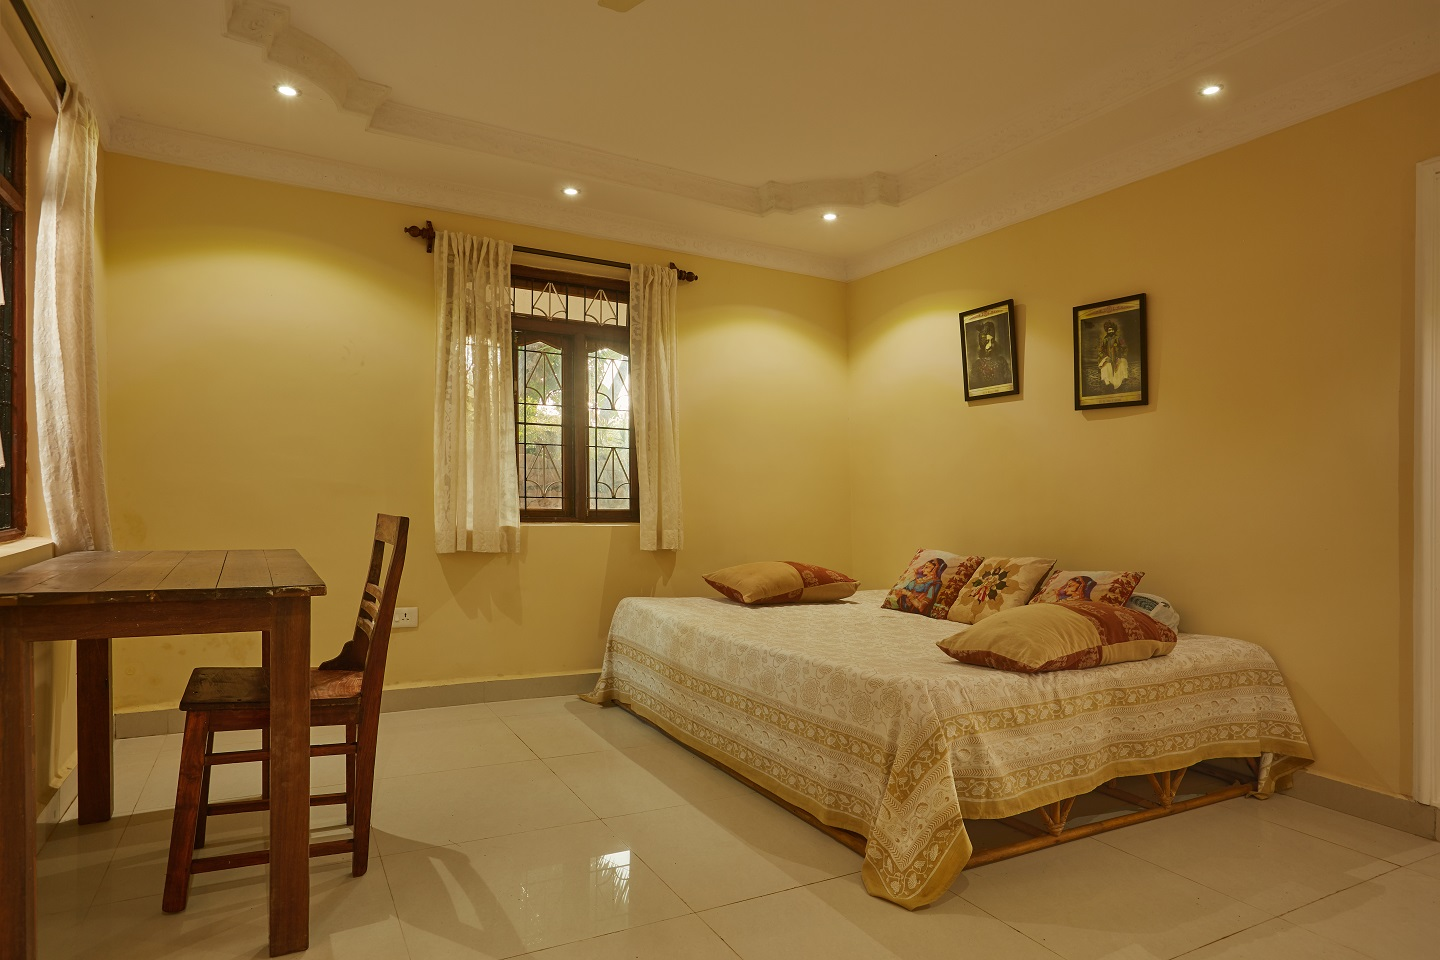 Two Bedroom Self-Service AC Apartment, Talpona, Goa living room